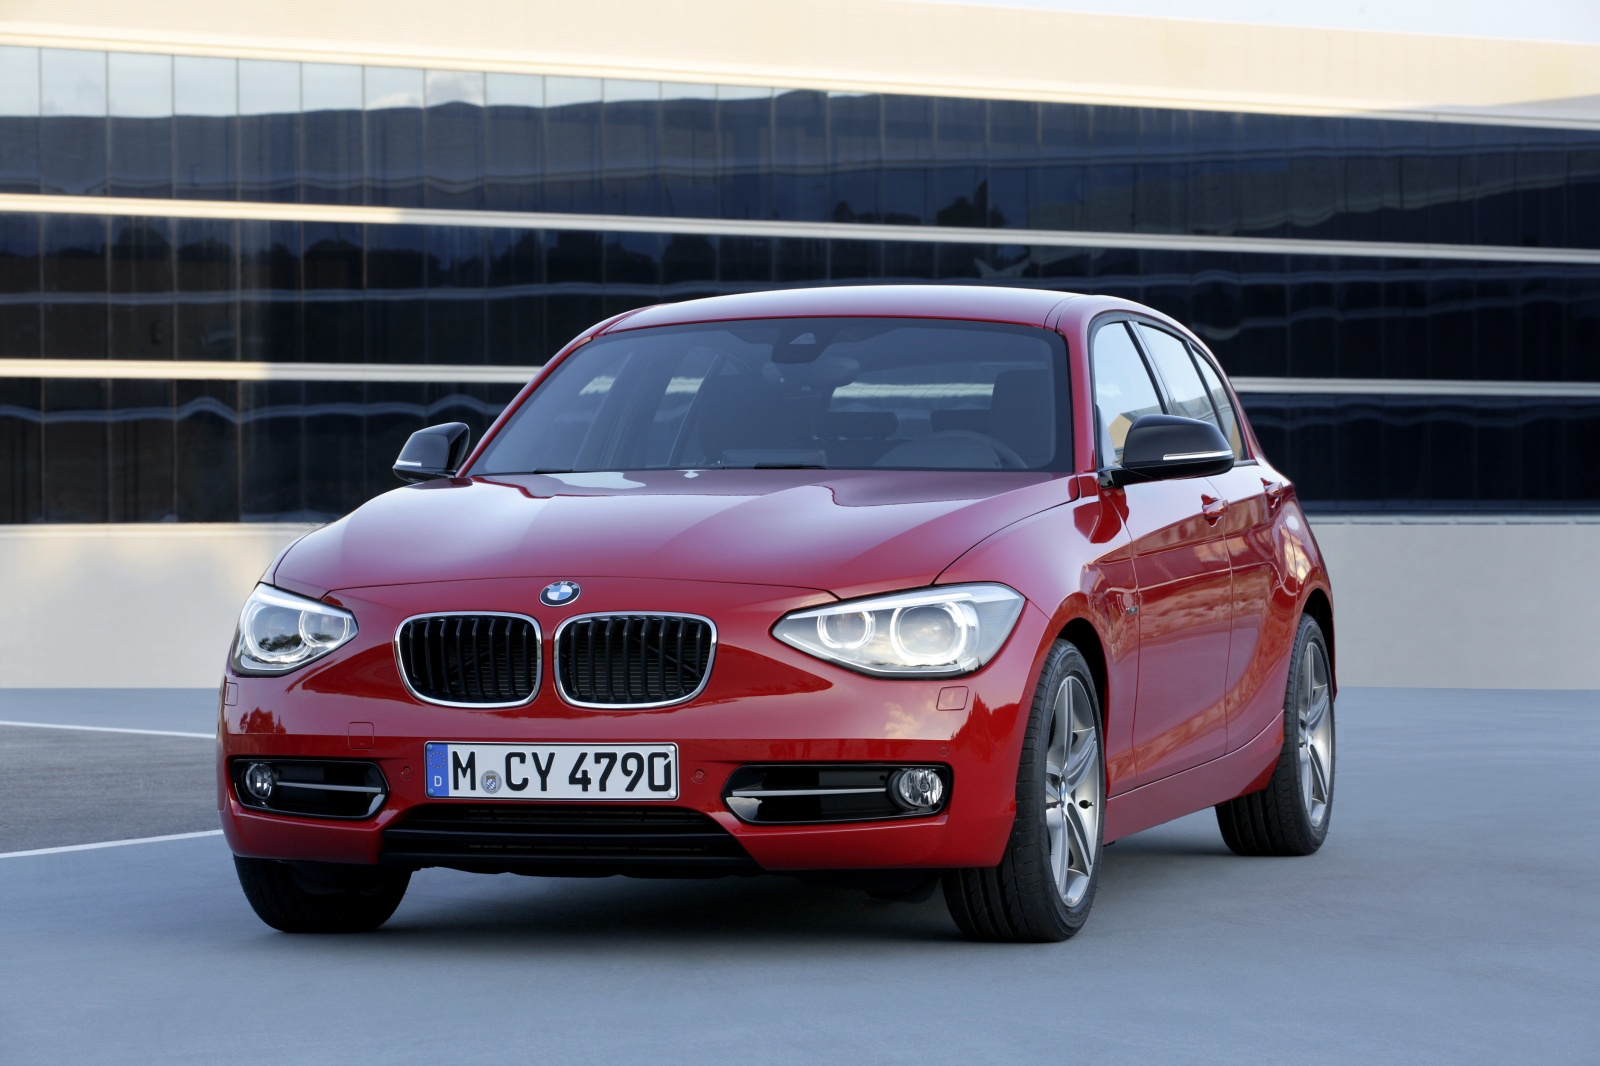 BMW 1 series 135is 2011 photo - 11